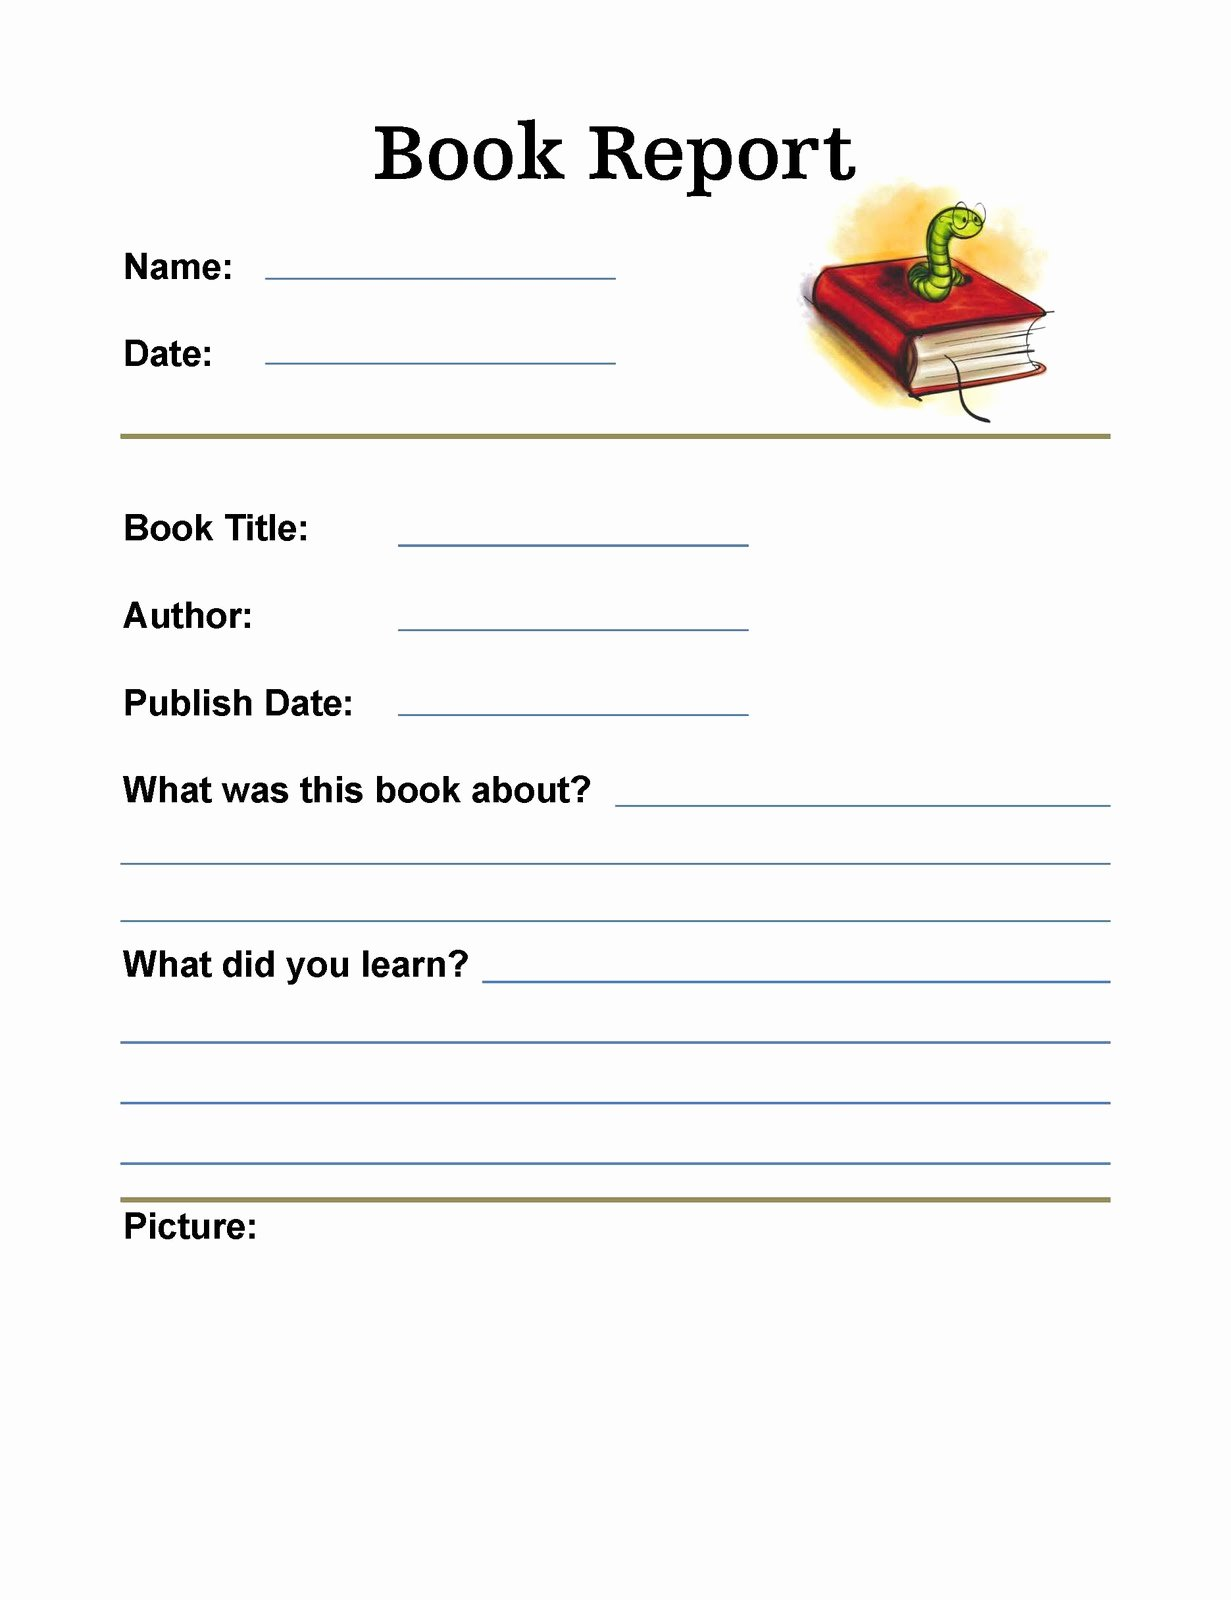 6th Grade Book Report Template Luxury so Much to Learn Book Reports